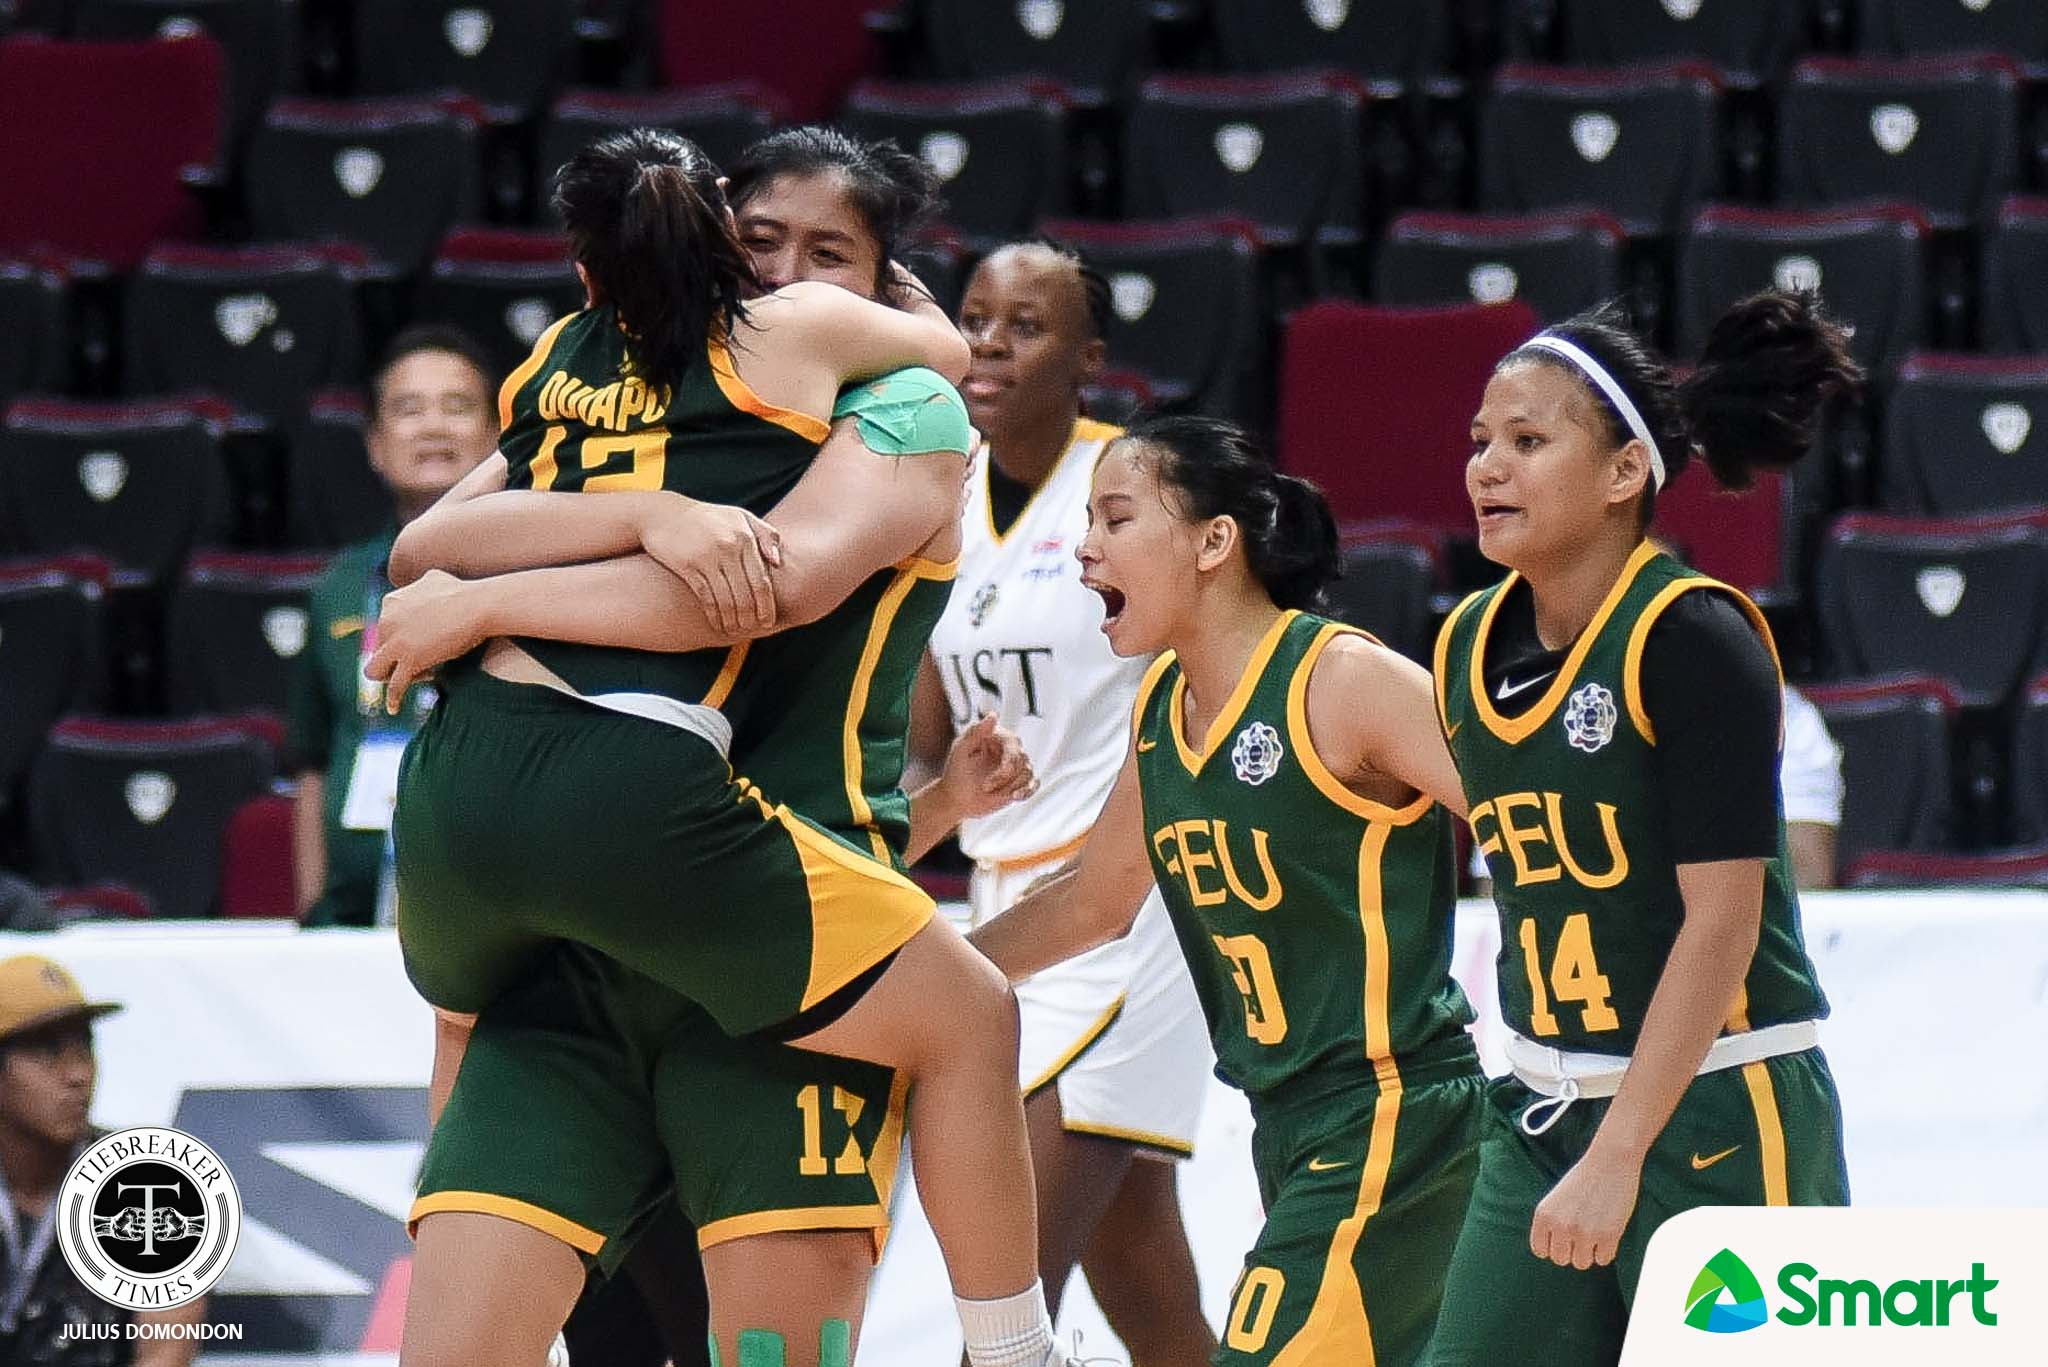 Tiebreaker Times FEU Lady Tamaraws live to fight another day, disarm UST Basketball FEU News UAAP UST  Valerie Mamaril UST Women's Basketball UAAP Season 82 Women's Basketball UAAP Season 82 Ruby Portillo Haydee Ong Grace Irebu FEU Women's Basketball fatima quiapo Clare Castro Bert Flores